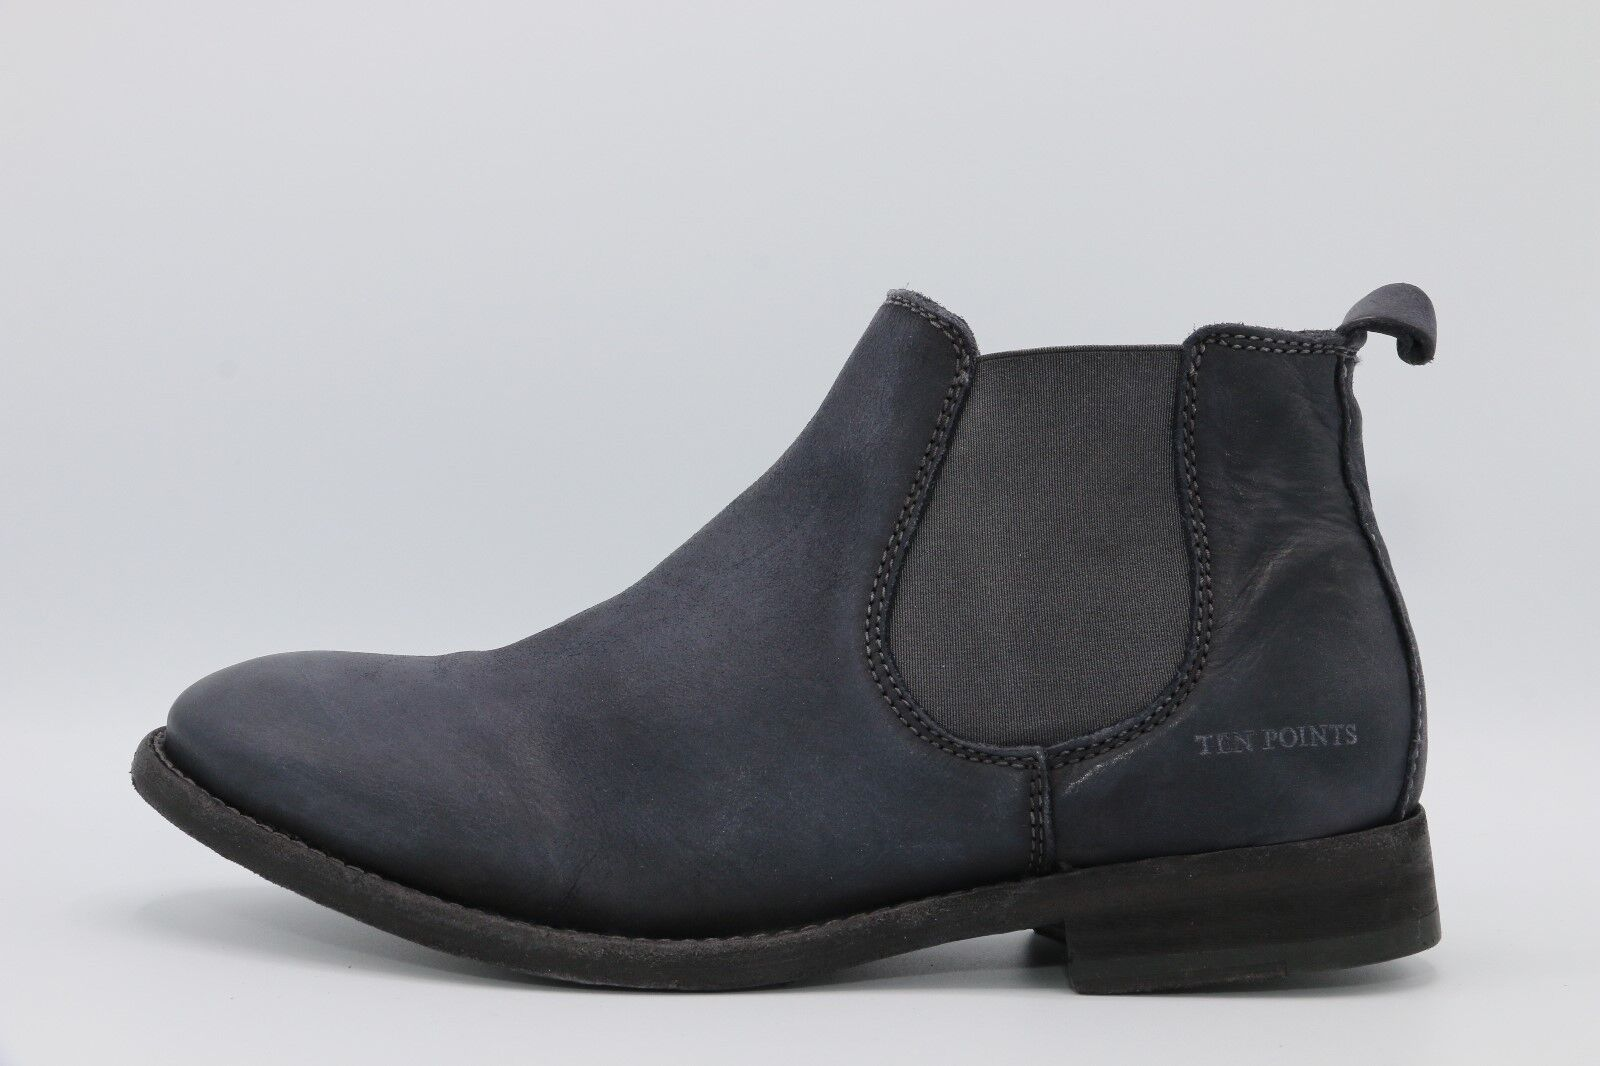 TEN points Magic 101 NERO 369032-Uomo-Boots-Nero - Pelle Pelle Pelle ... b9c2153f7e3